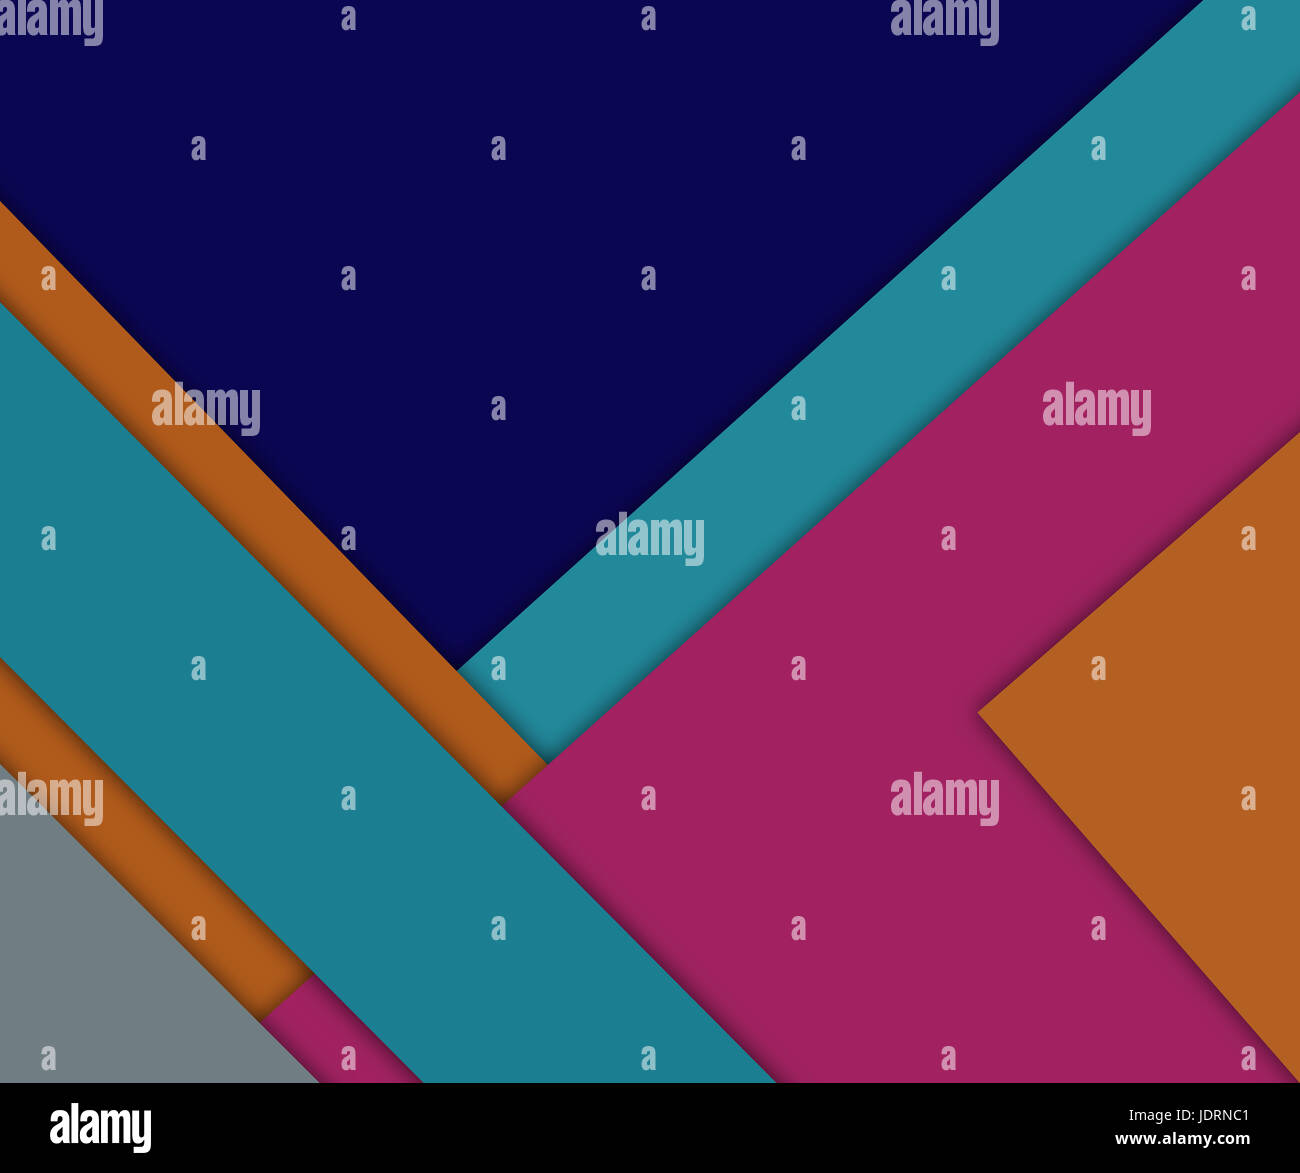 Abstract multicolor geometric overlapping shapes background. Raster illustration - Stock Image